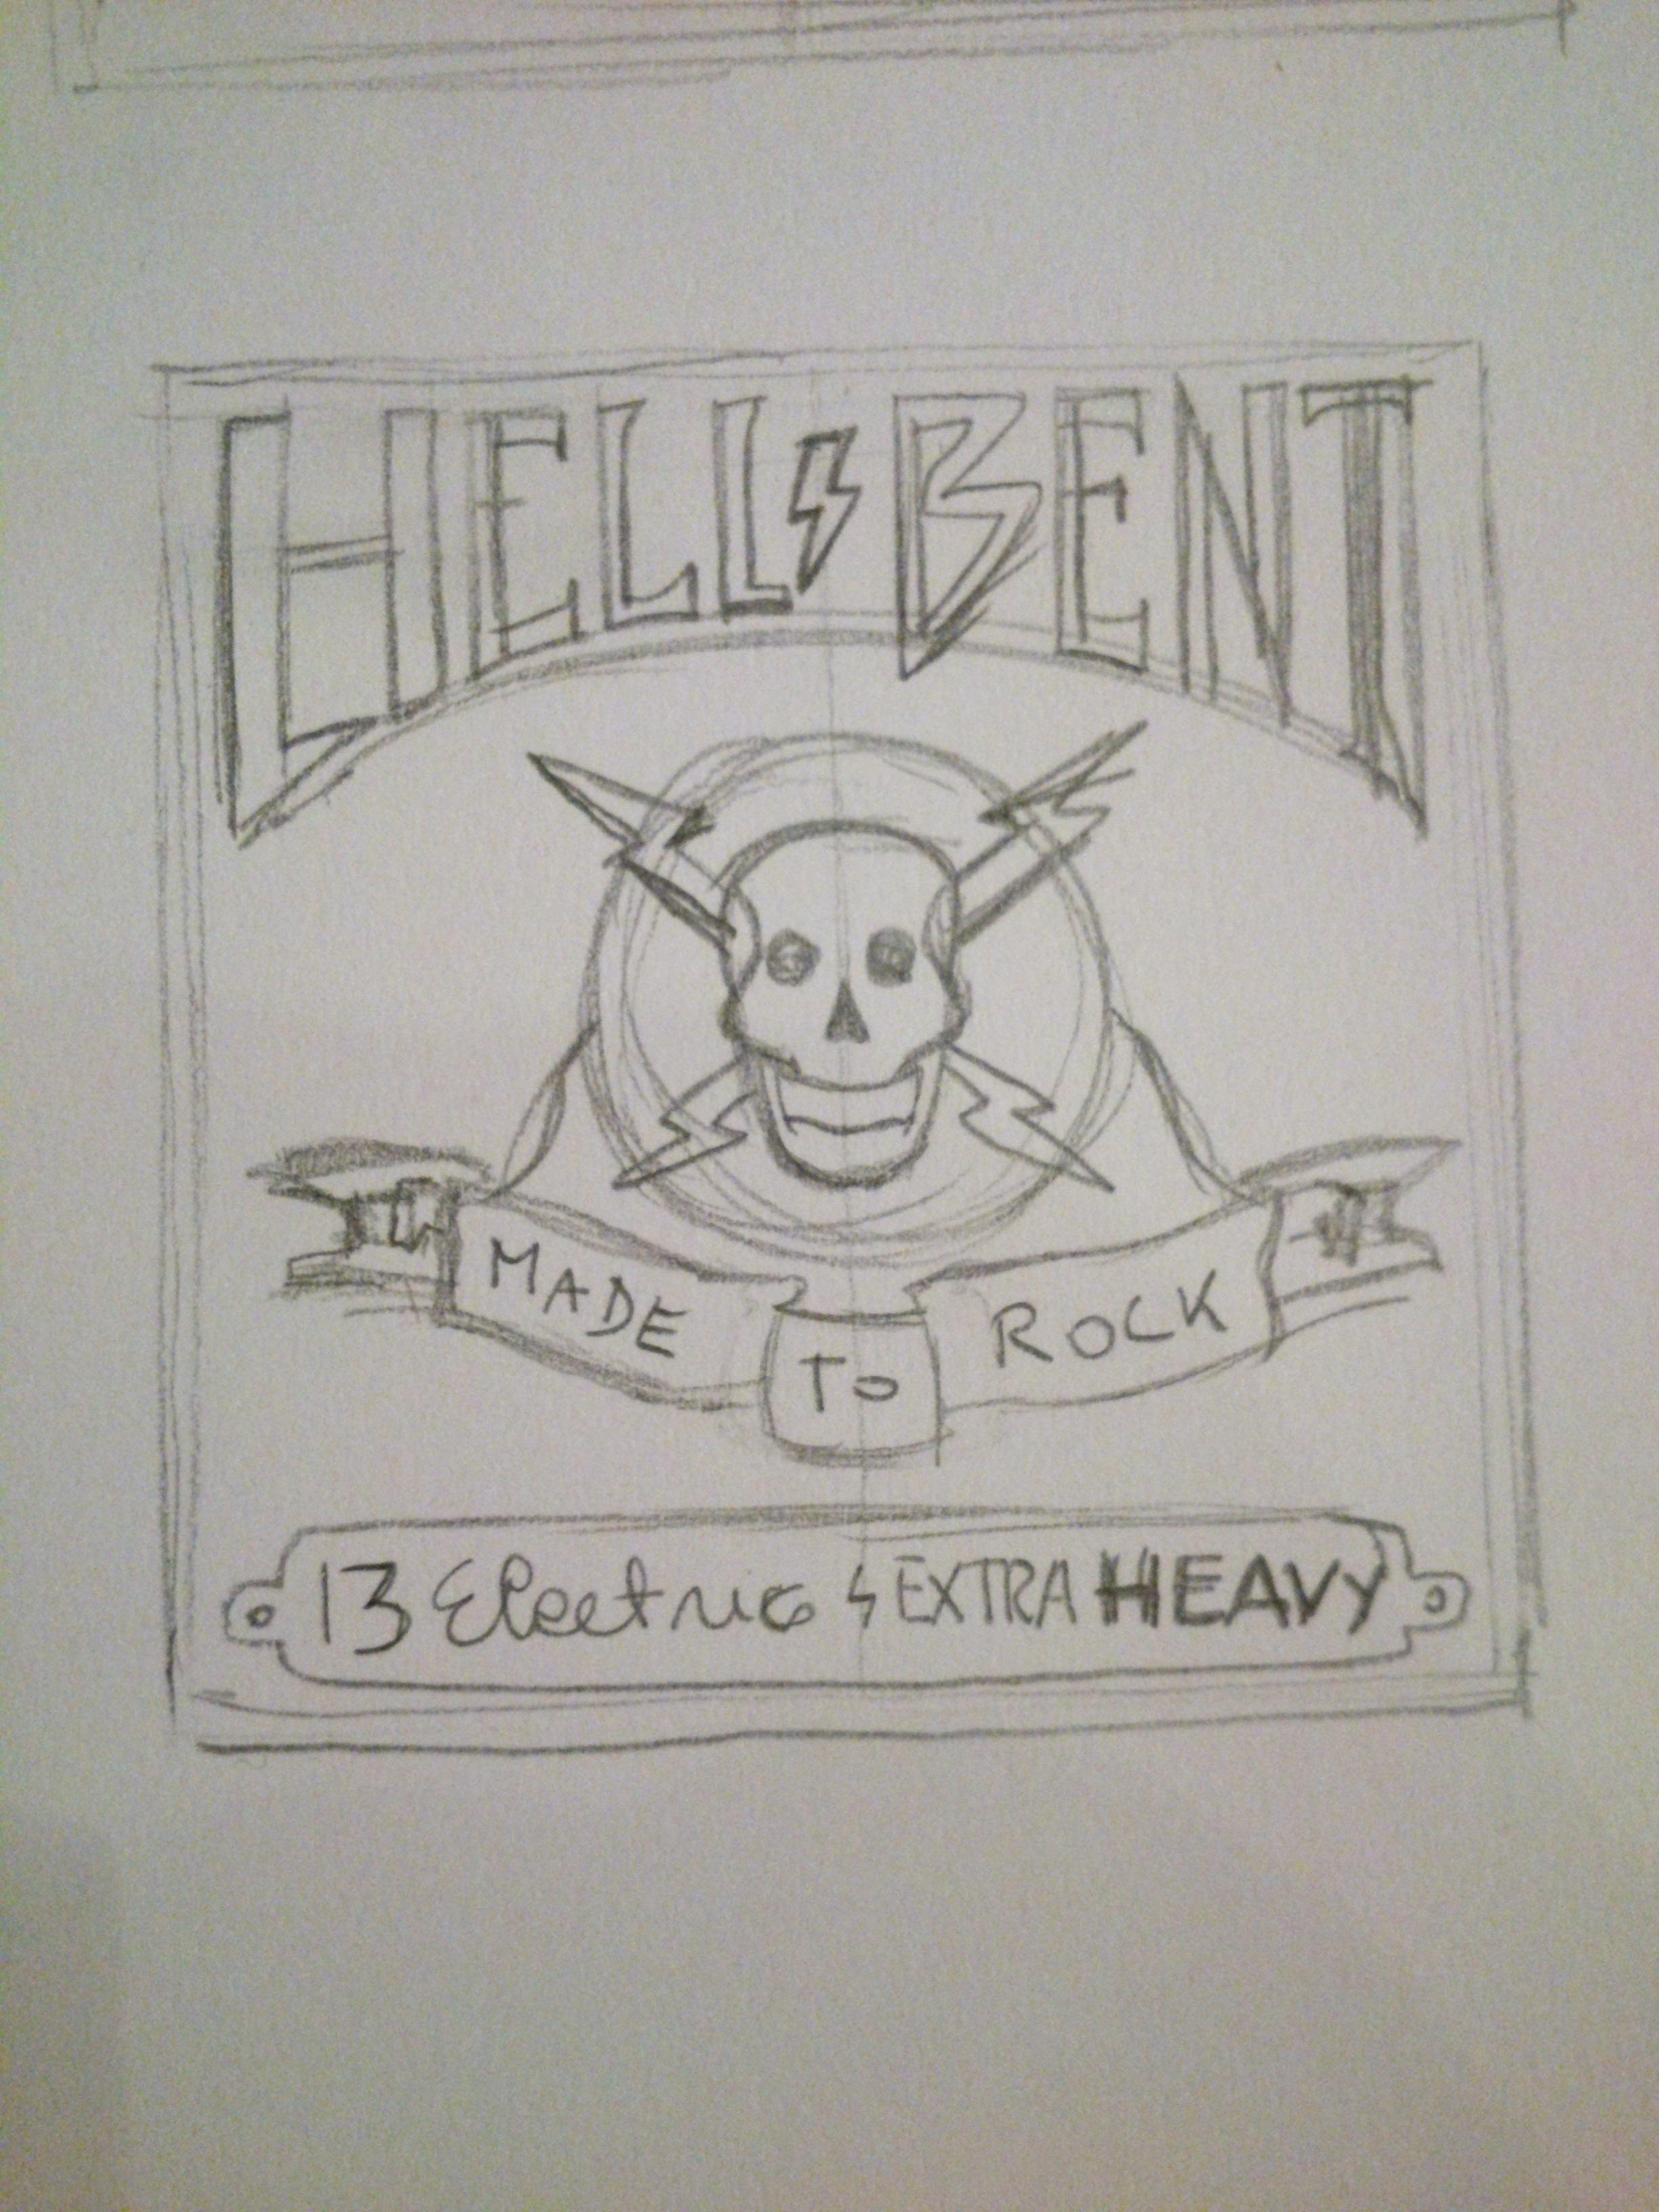 HELL BENT - GUITAR STRINGS - image 8 - student project